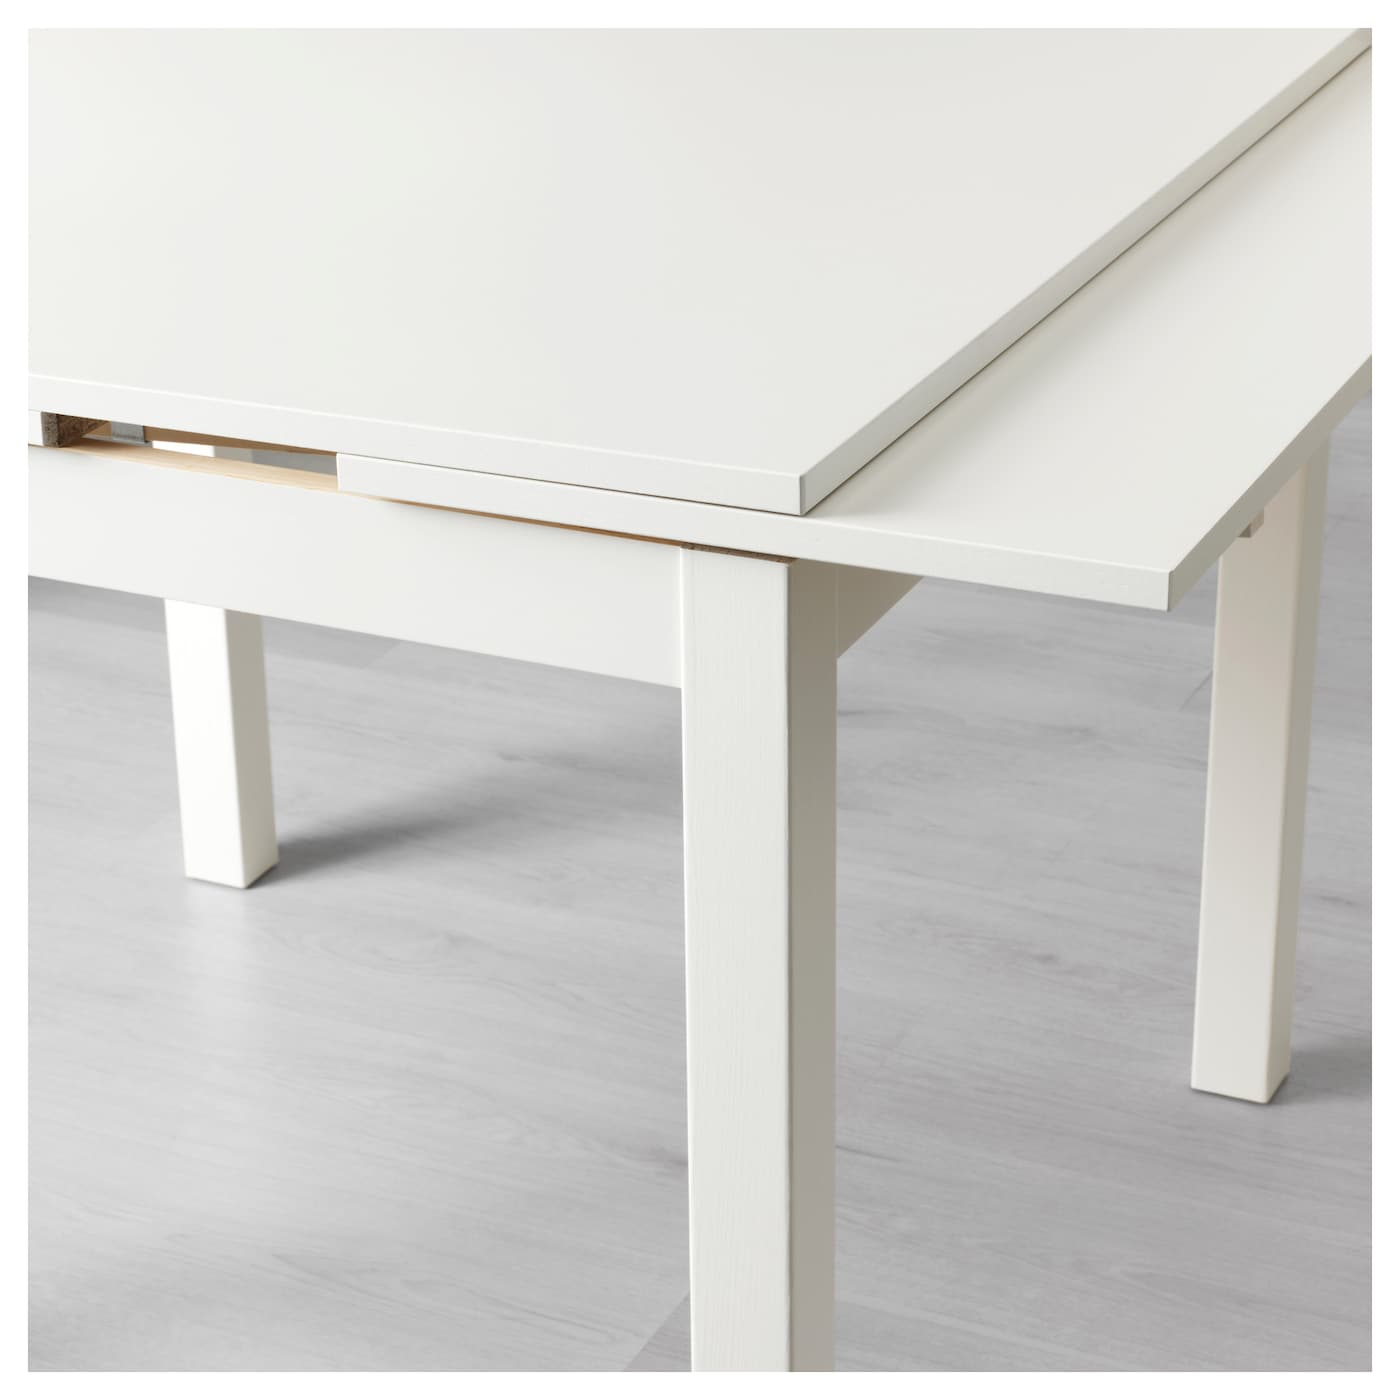 Bjursta extendable table white 90 129 168x90 cm ikea for Table ronde extensible